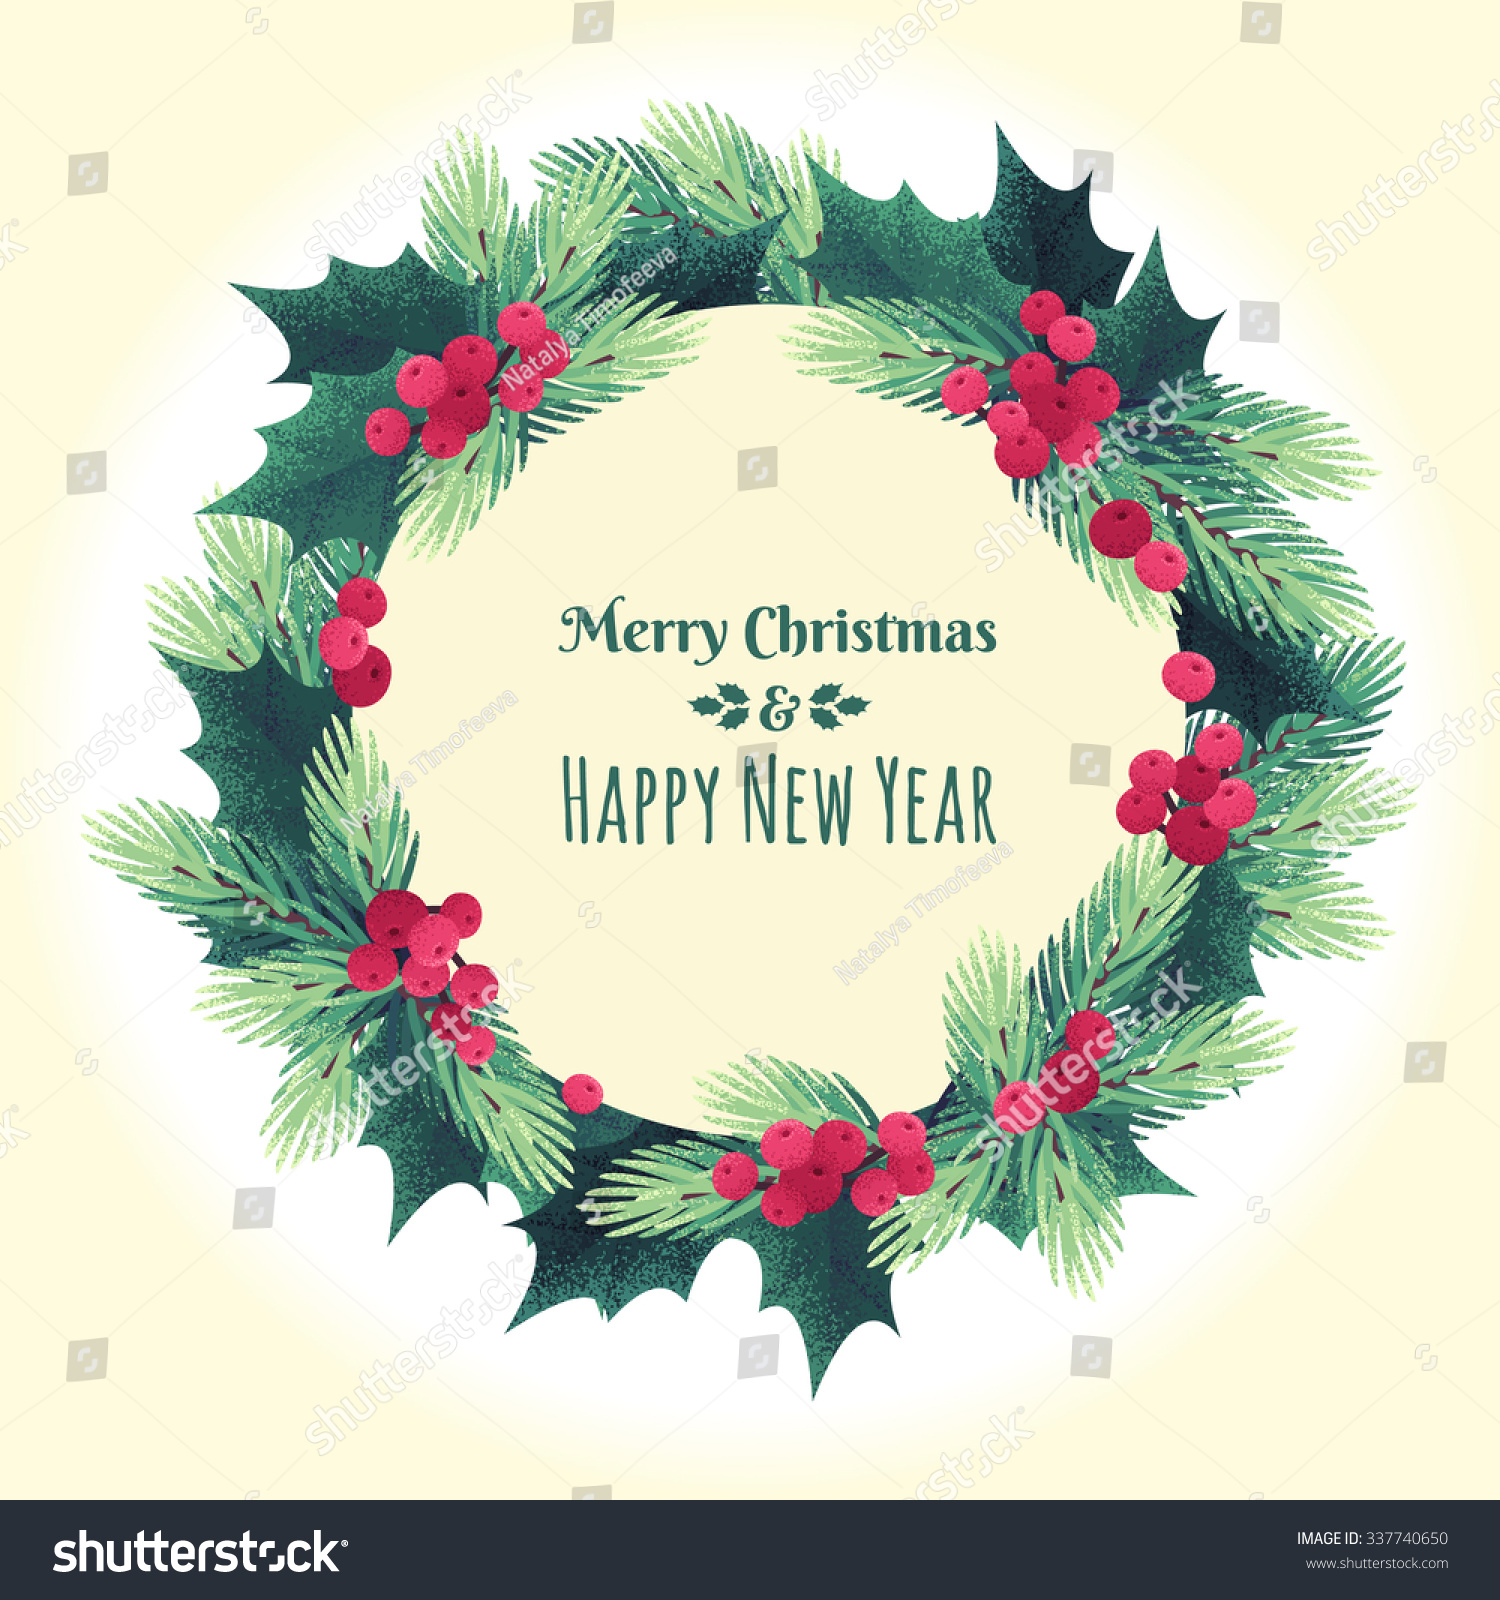 Christmas Round Template Fir Branches Holly Stock Vector Royalty